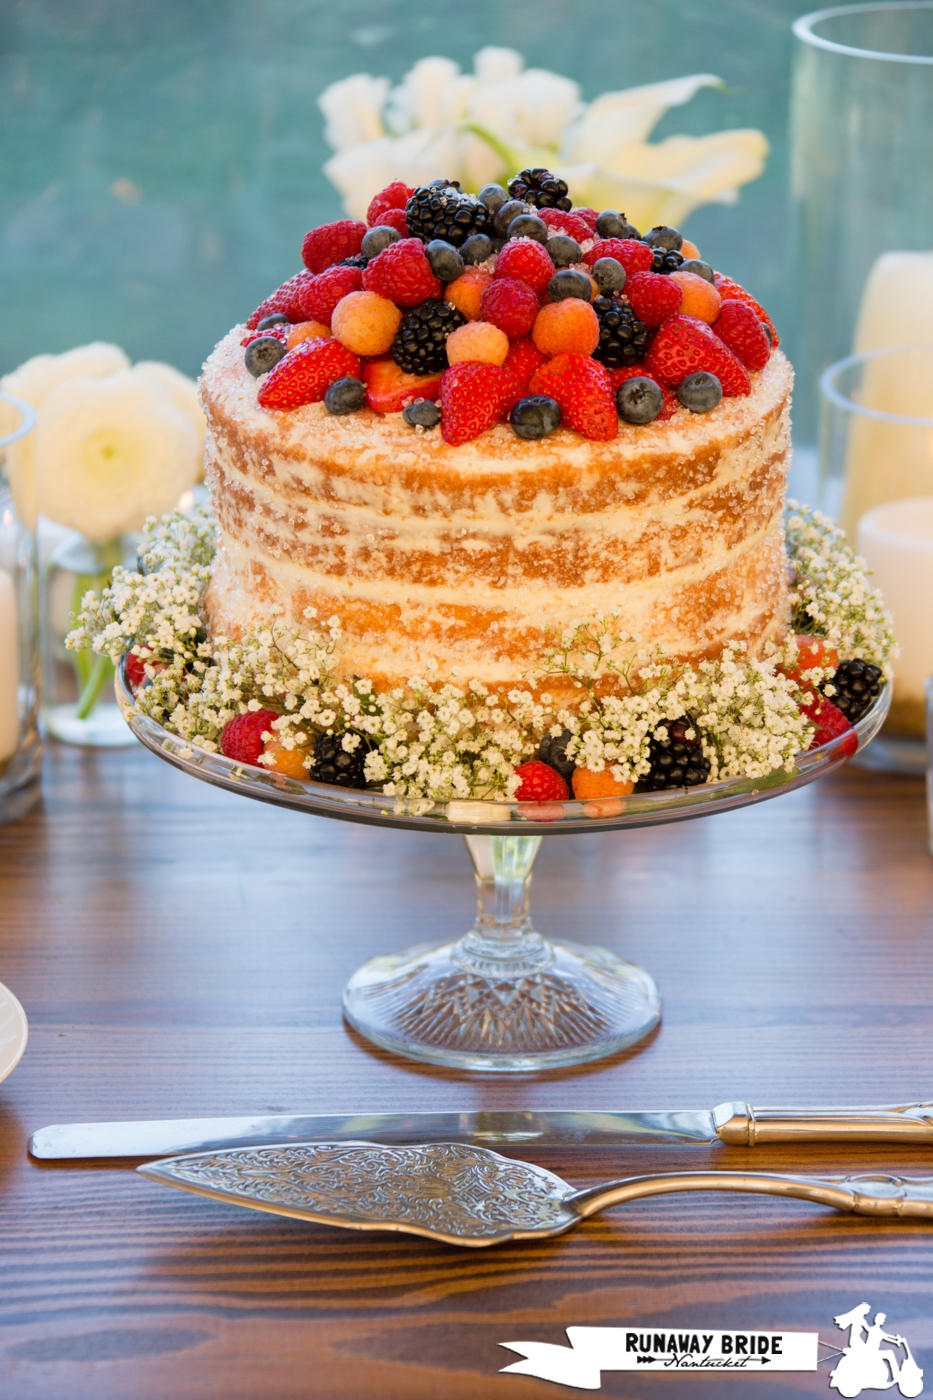 Naked Cake by Nantucket Cake Company